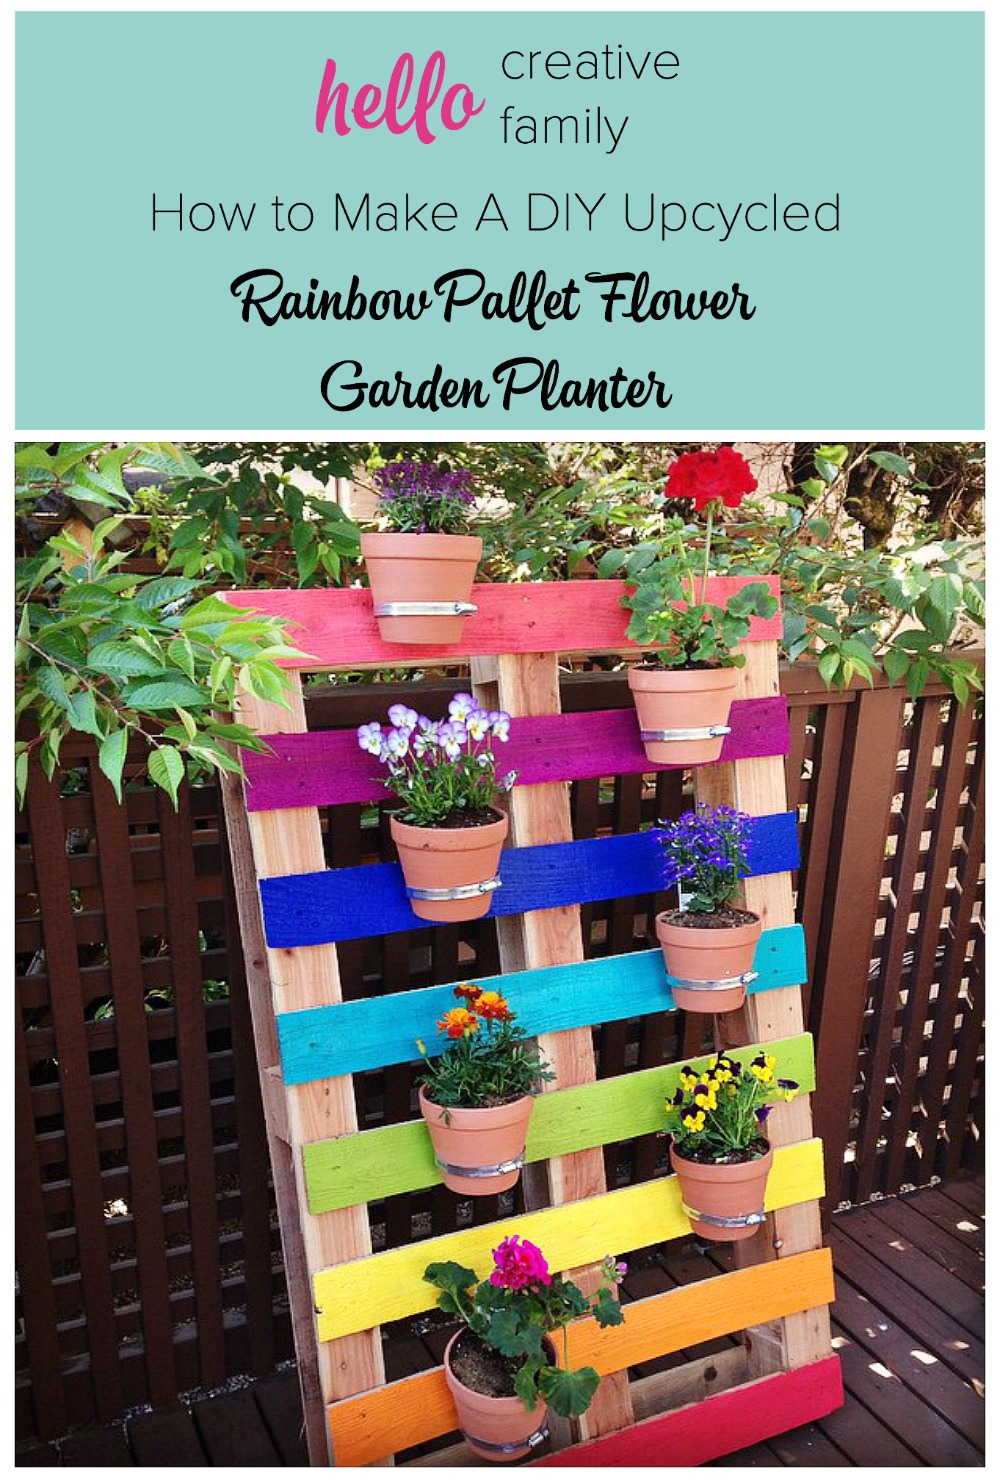 Create A Bright & Colorful Upcycled Rainbow Pallet Planter Project With  These Simple Instructions From Hello